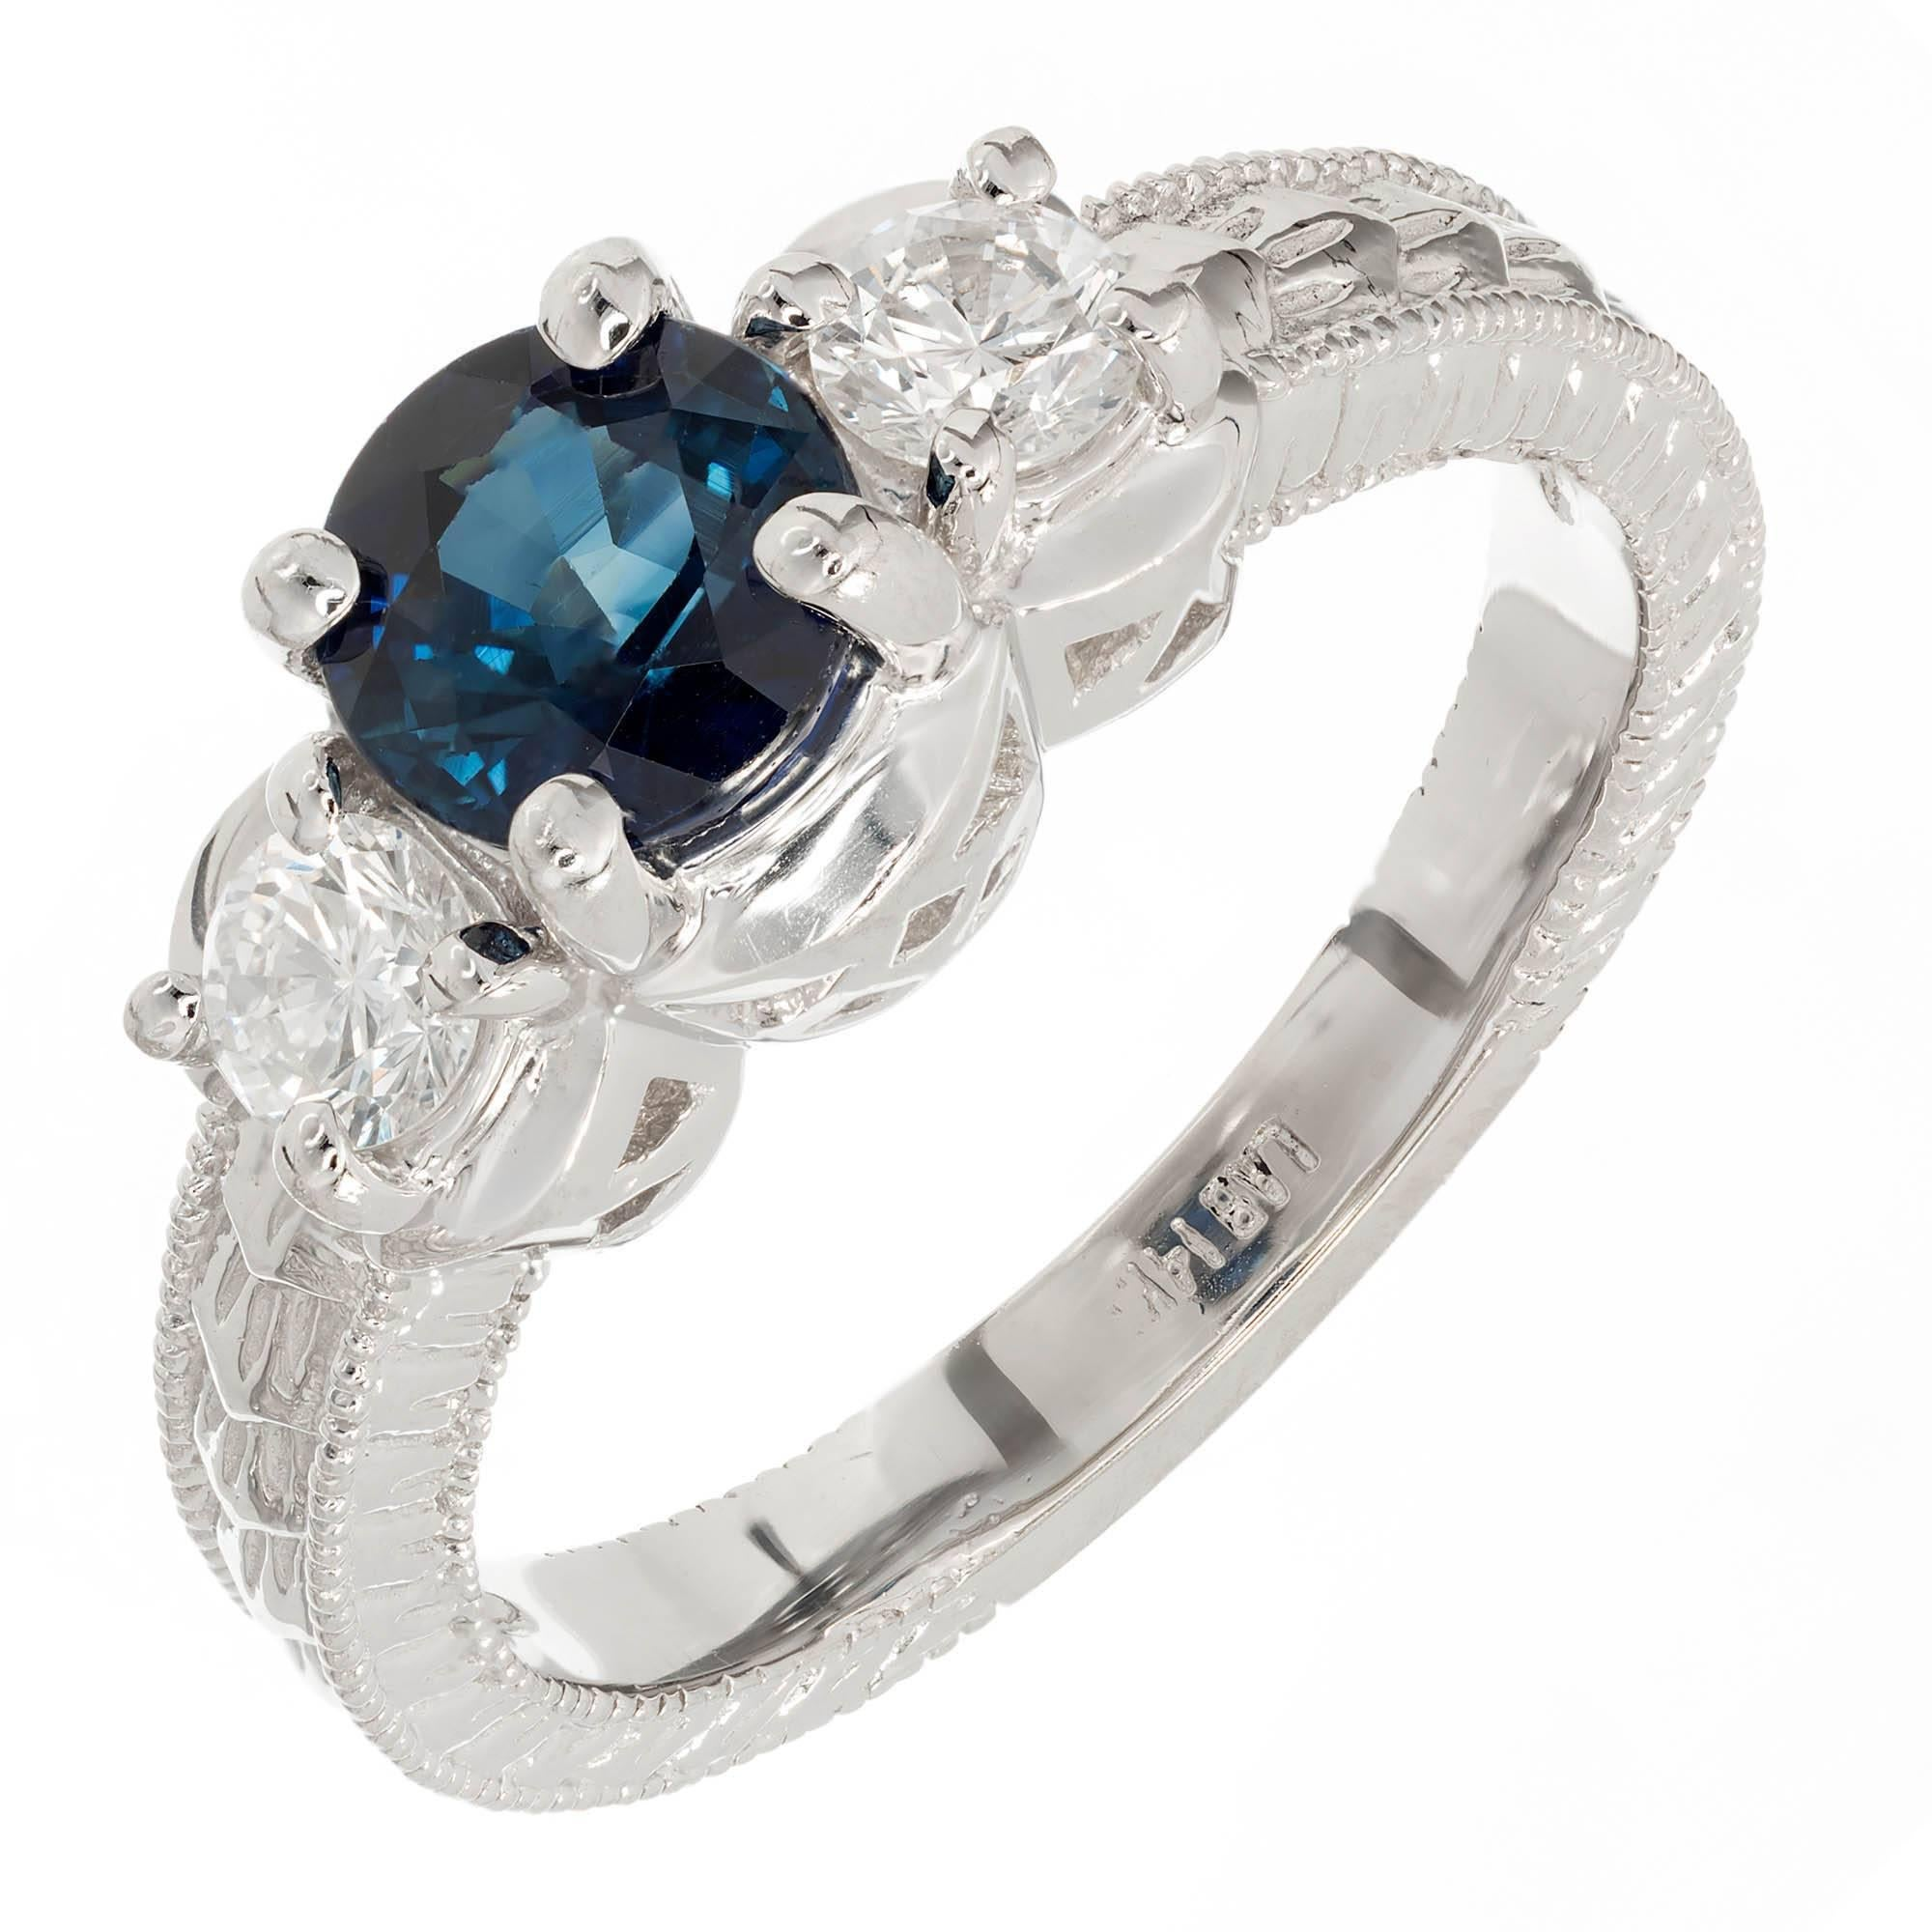 richard calder charm ring product centres charmed stone rings diamond engagement by